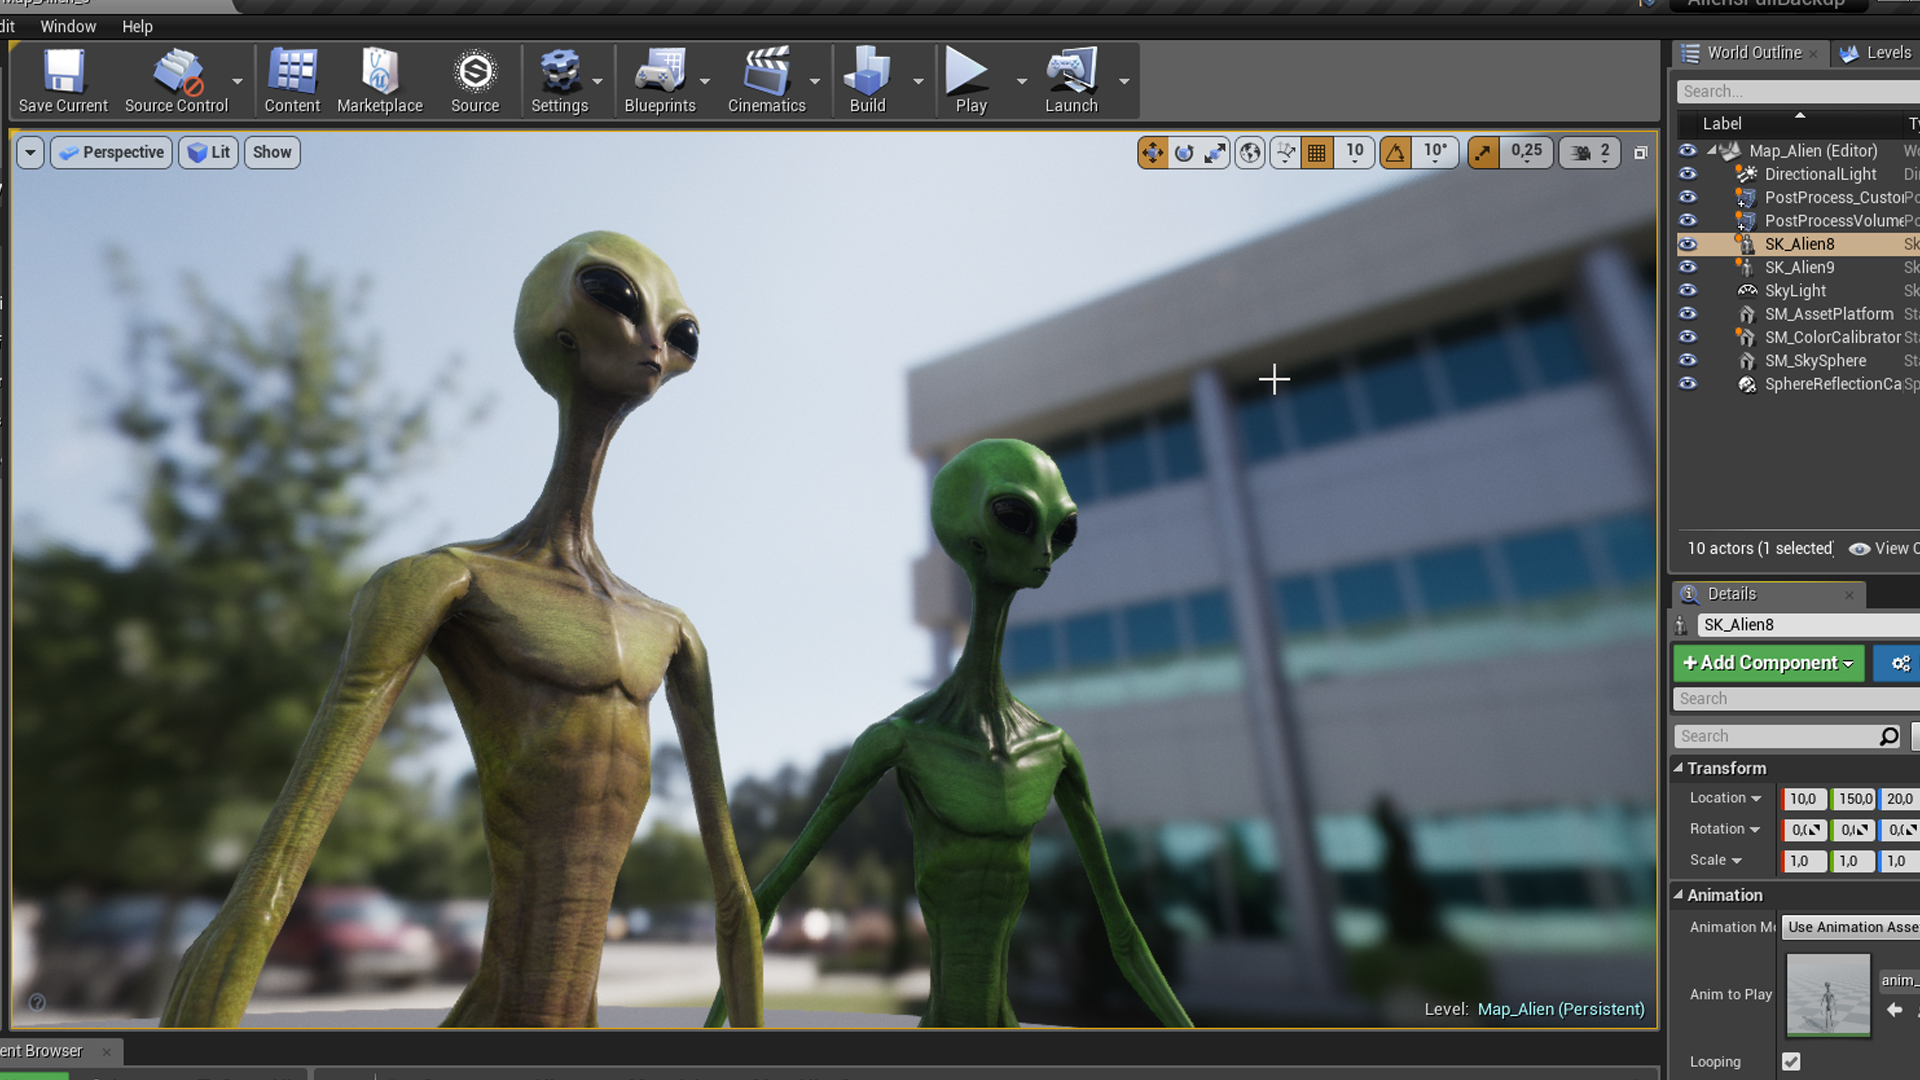 Realistic Alien 6 by SuperGameCharacters in Characters - UE4